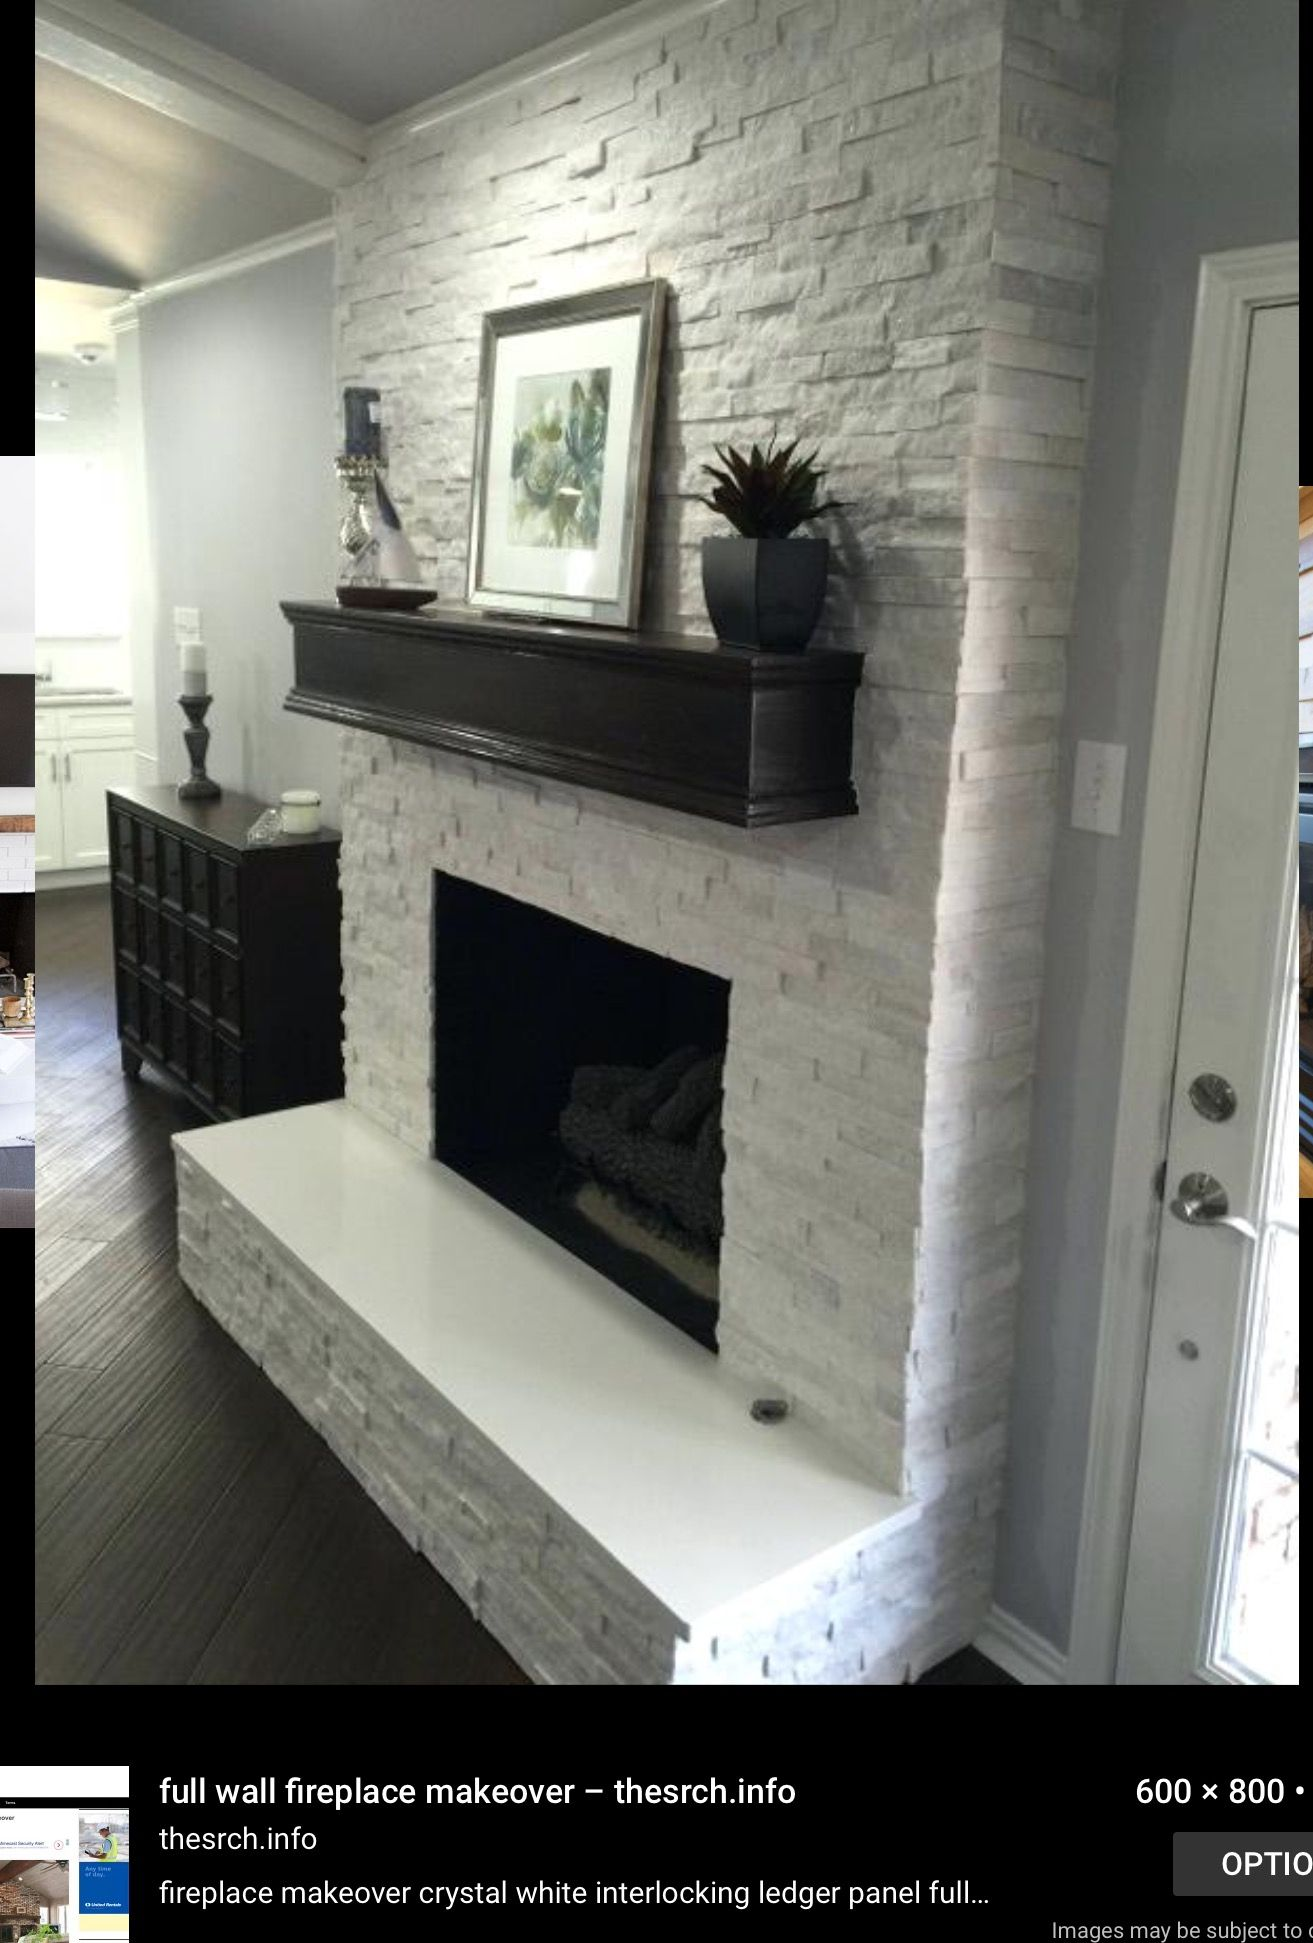 pin by dana on fireplace makeover pinterest hearths living